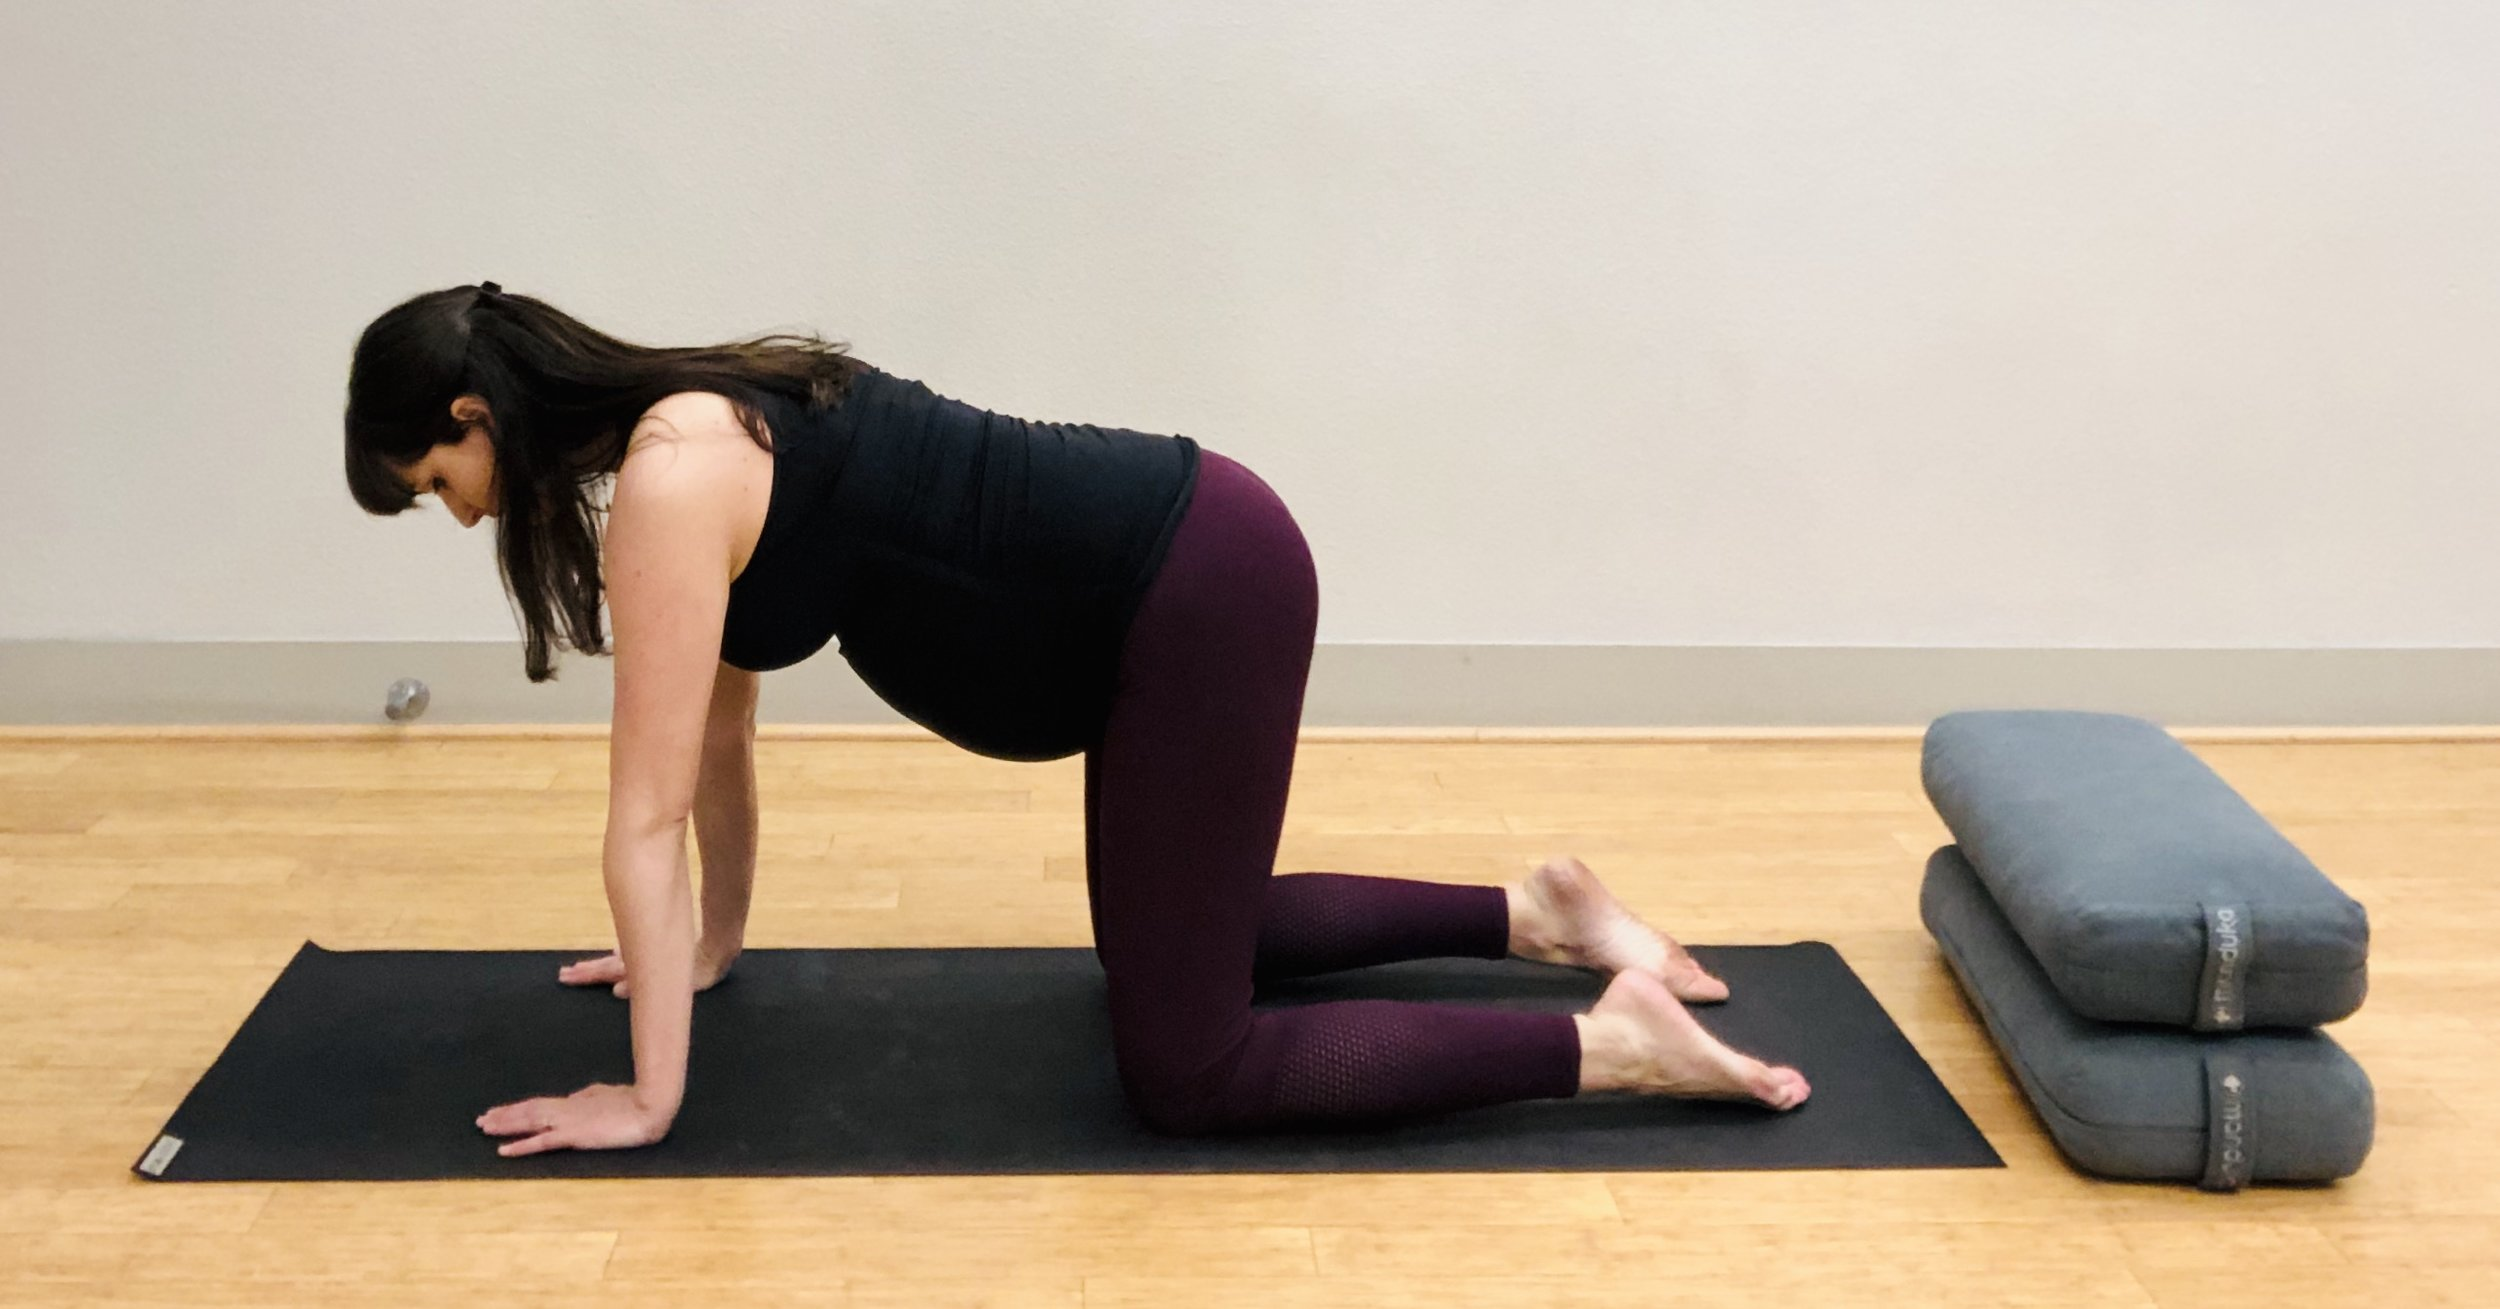 Table Top. Move through this position to come to Crescent Lunge on the other side.